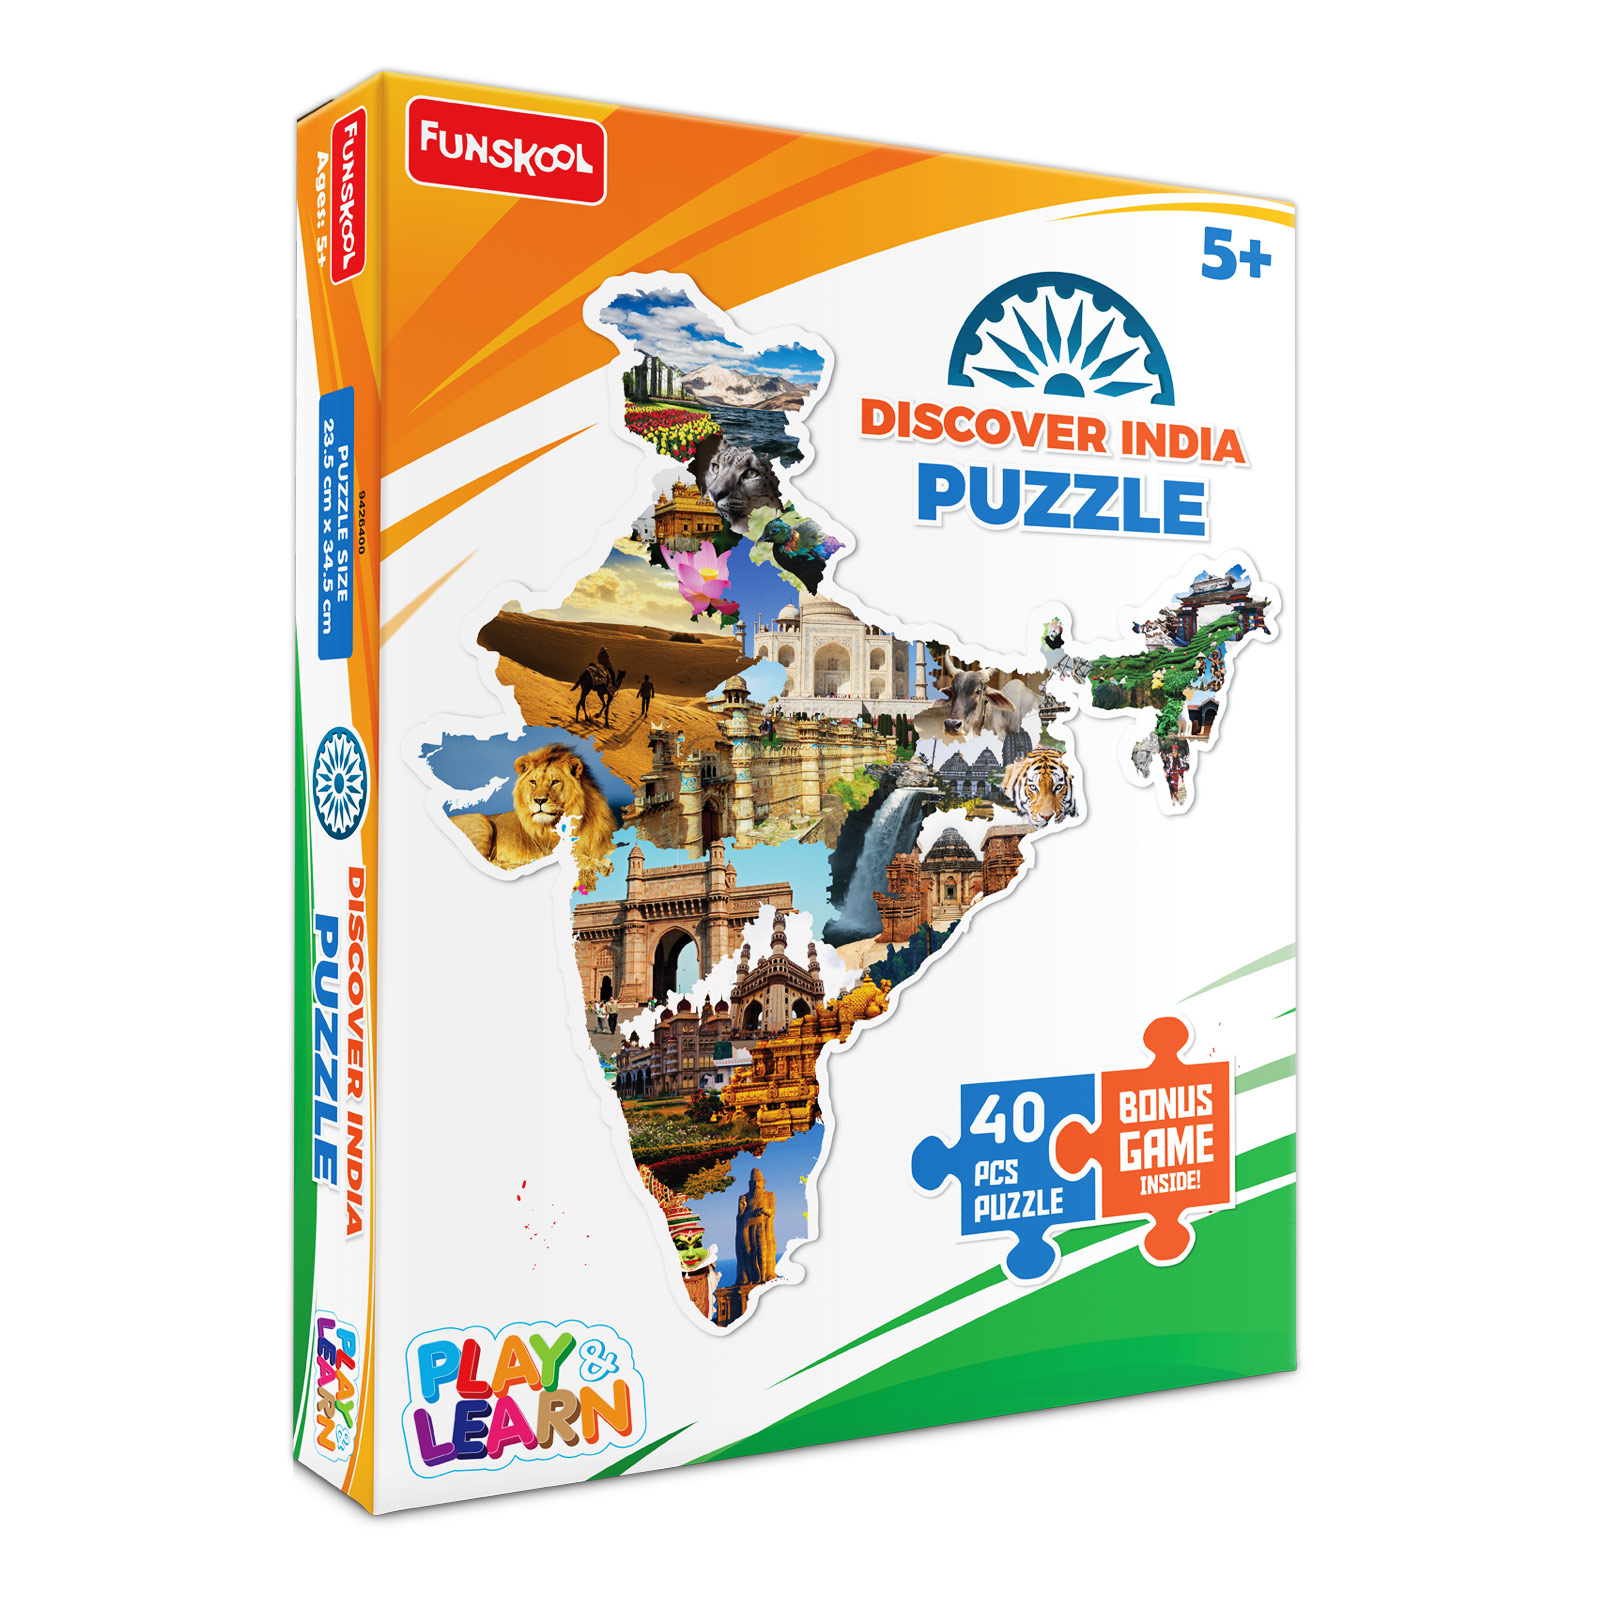 Discover India Puzzle